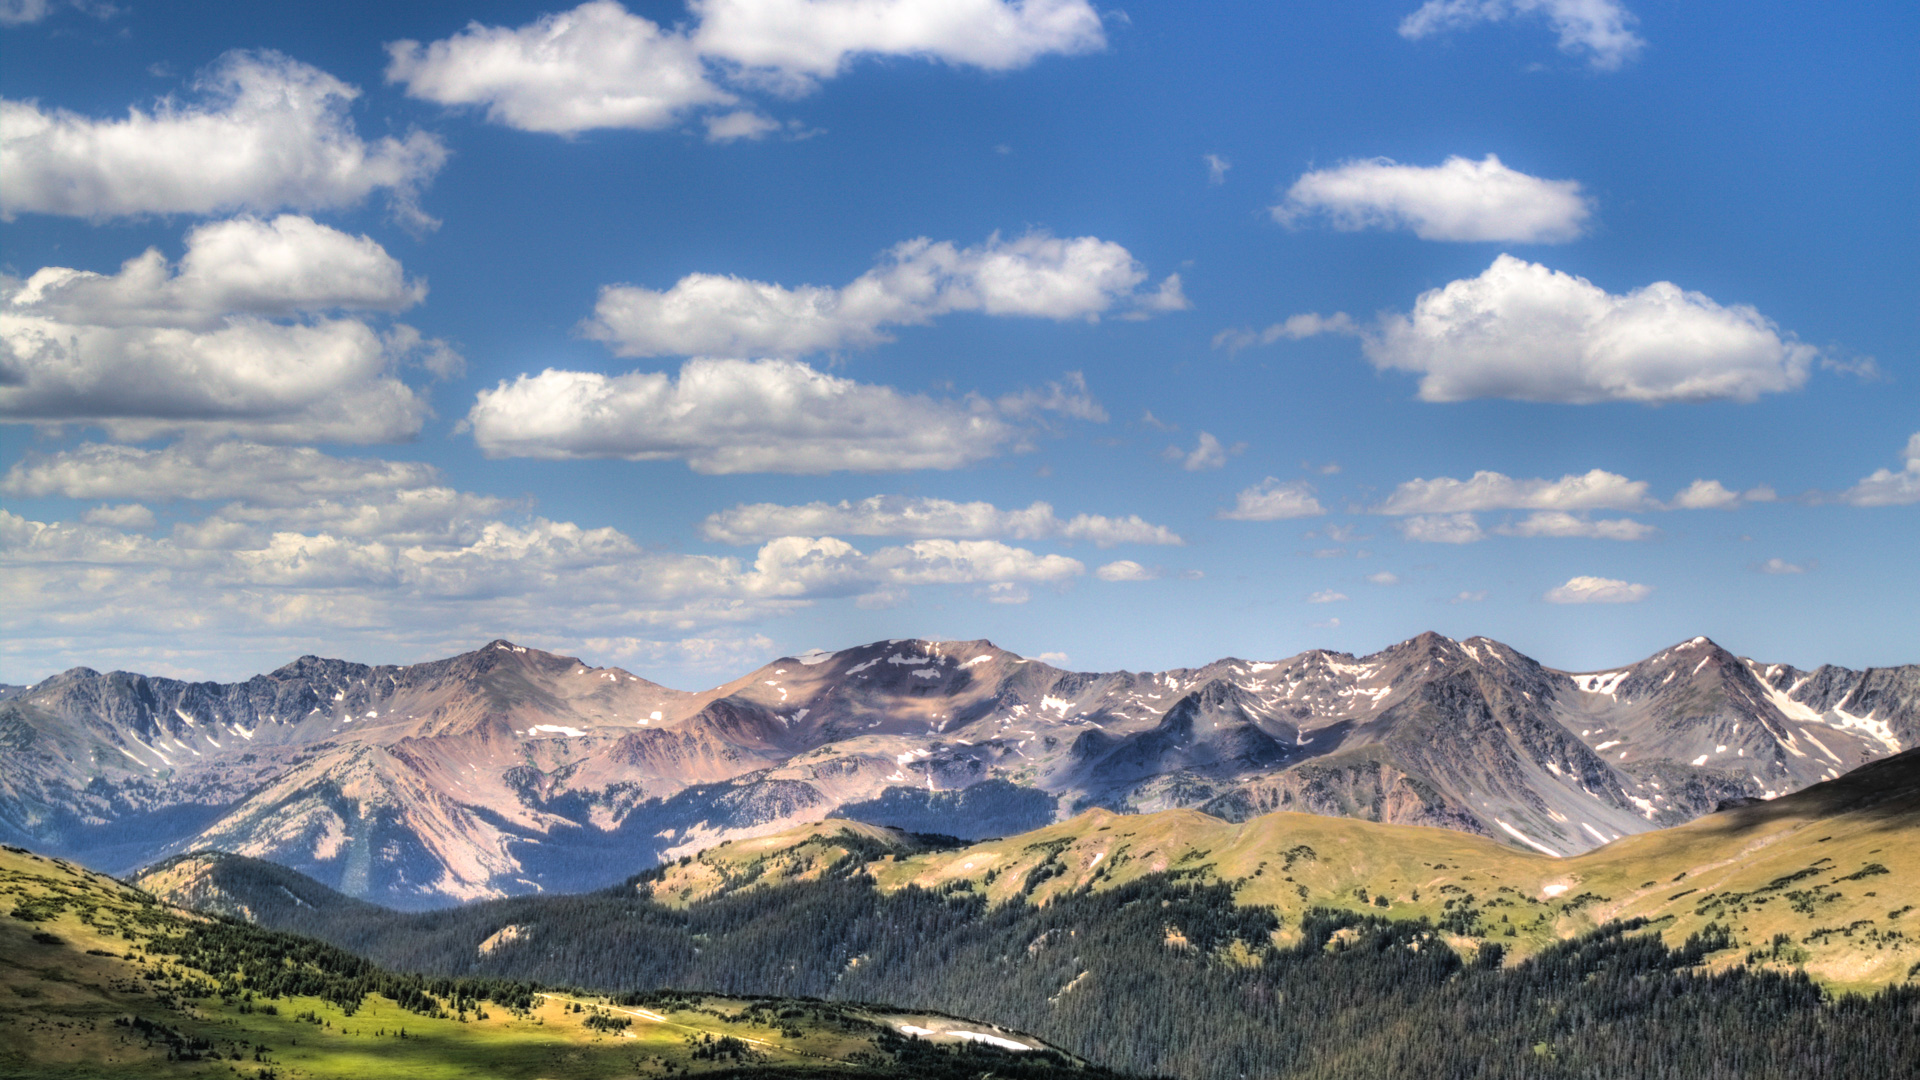 Fall Mountains In The Sun Wallpaper Scenic Guides Wallpapers Rmnp